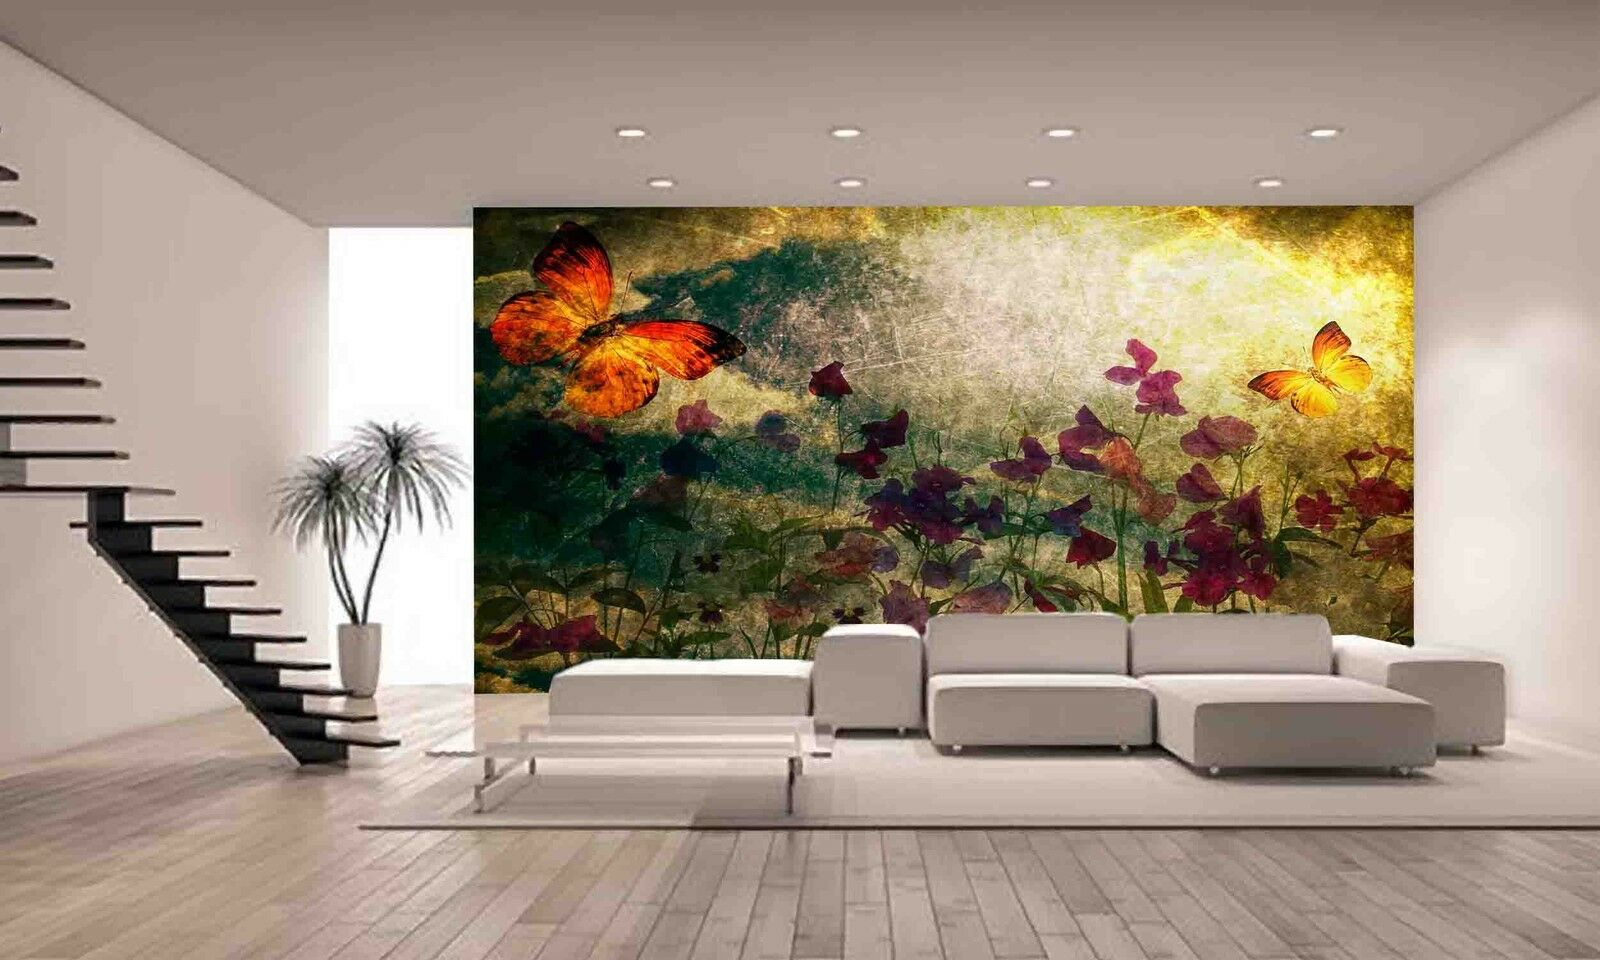 Photo Wallpaper Vintage Flowers GIANT WALL DECOR PAPER POSTER FOR BEDROOM